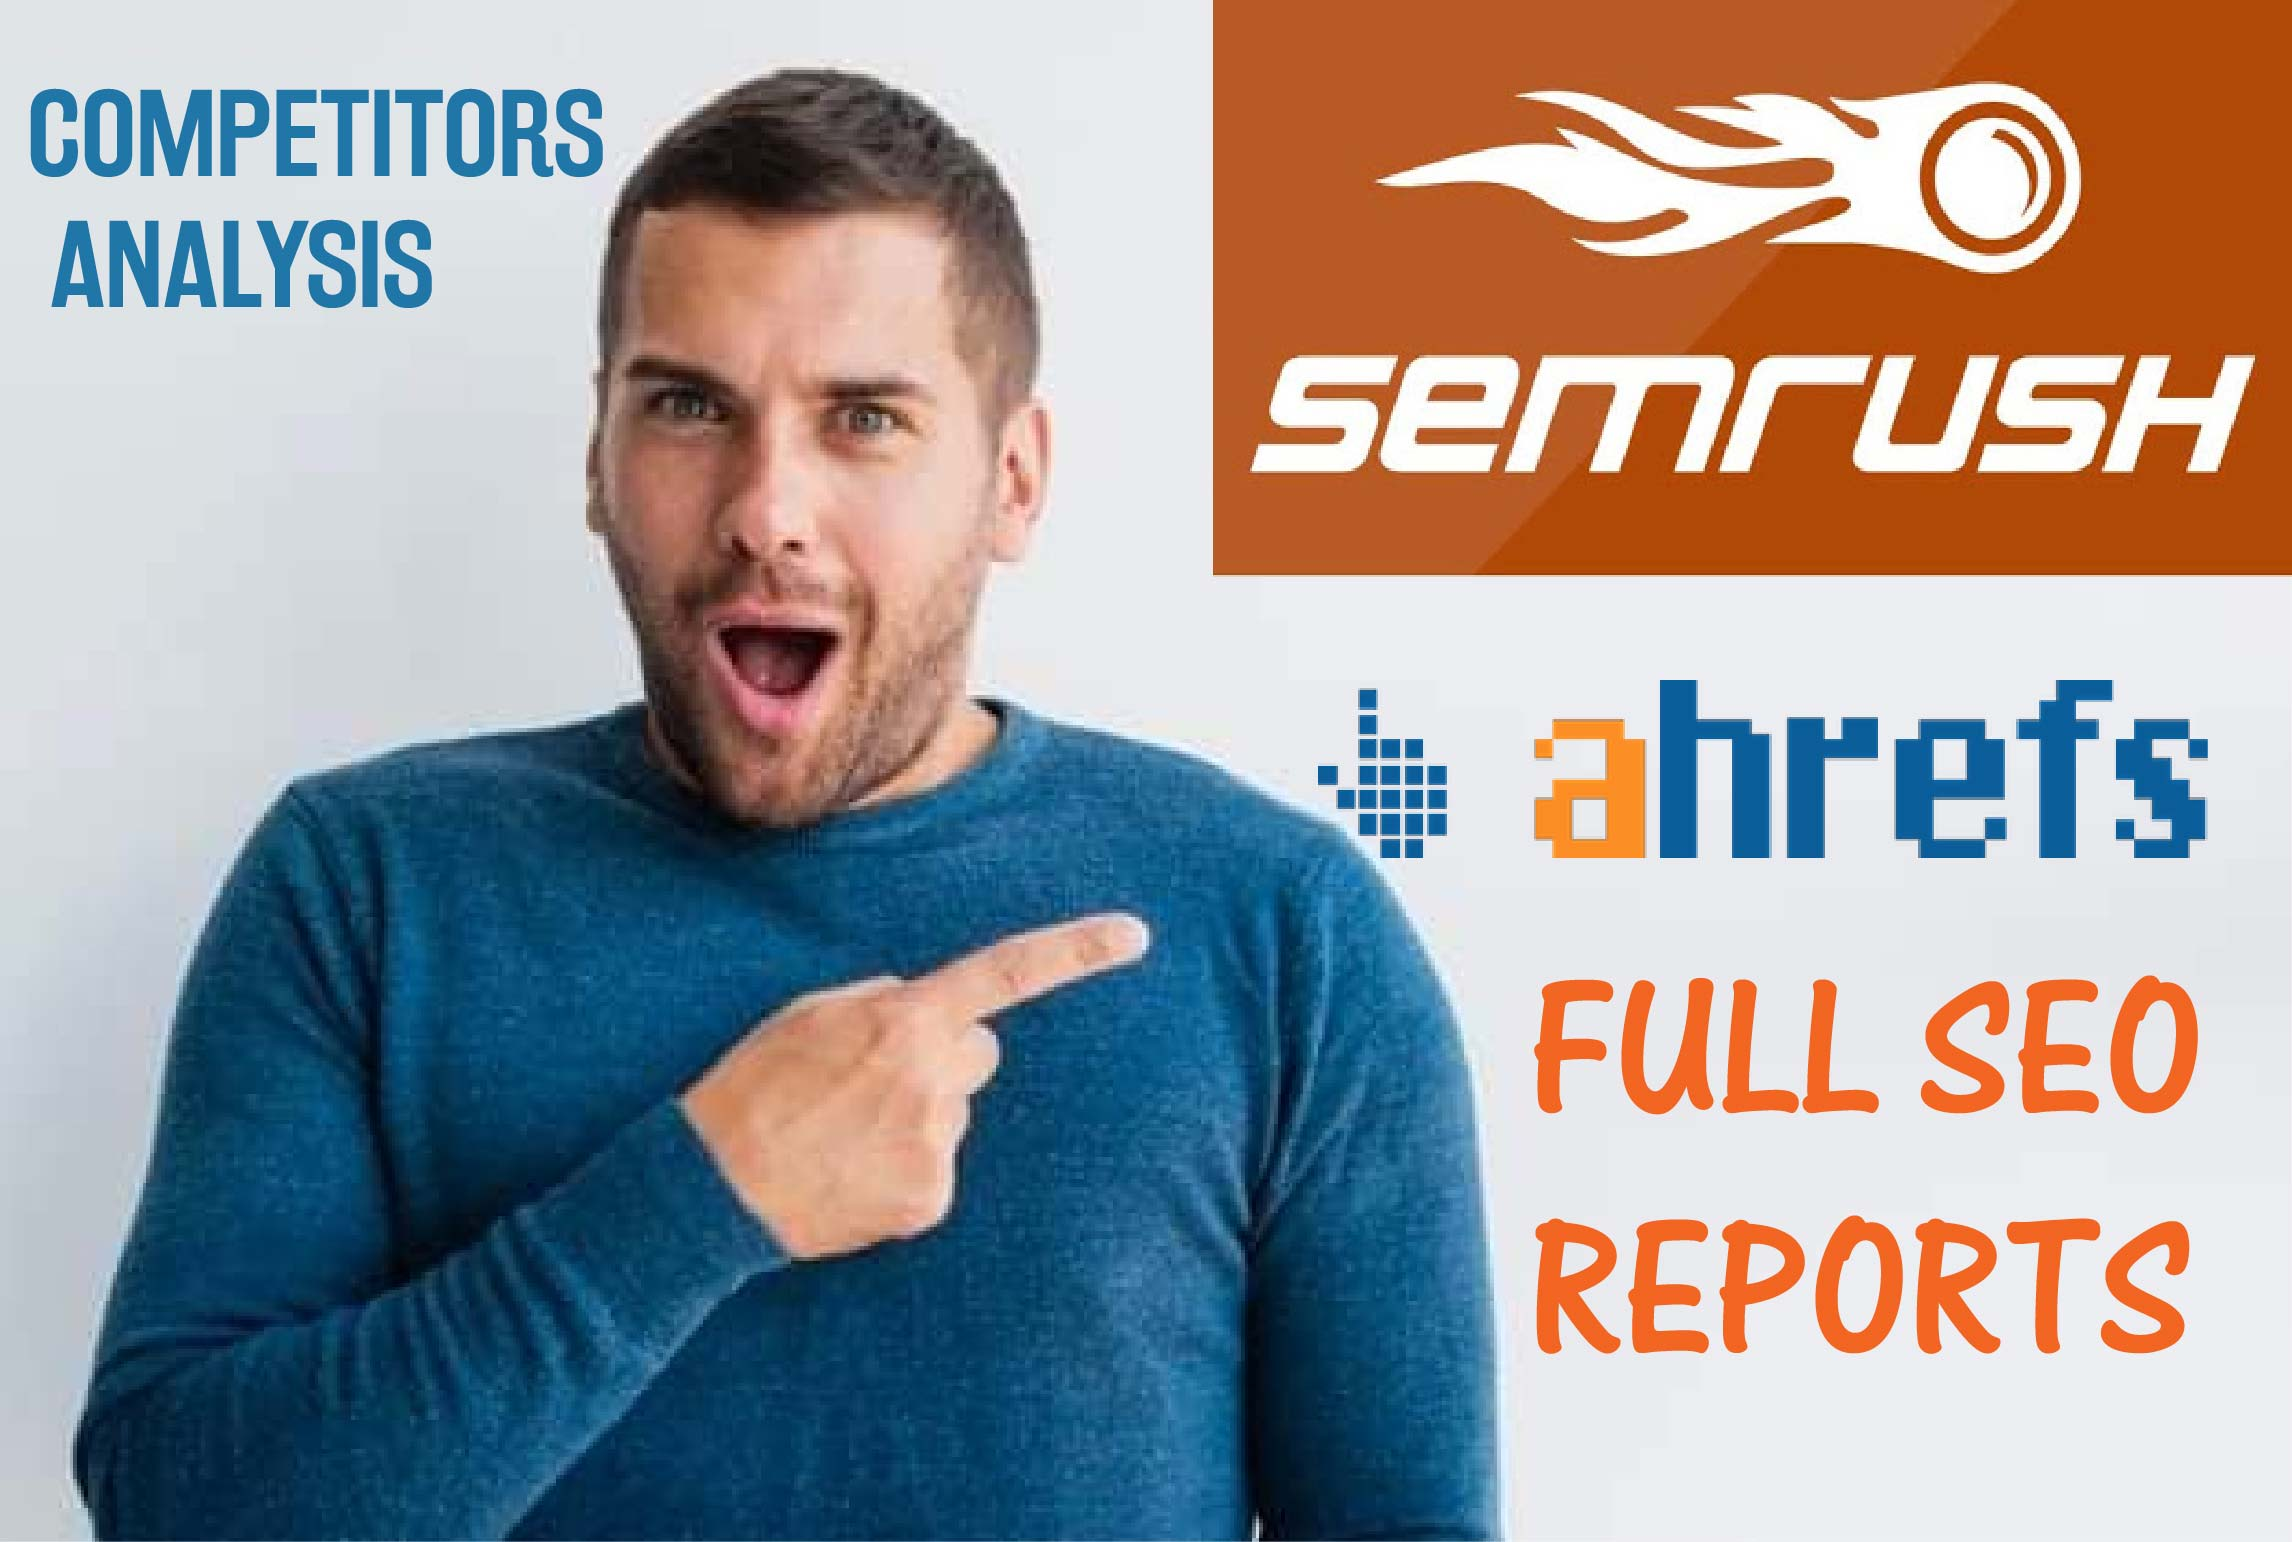 I will give you a full ahrefs semrush seo report for 10 websites